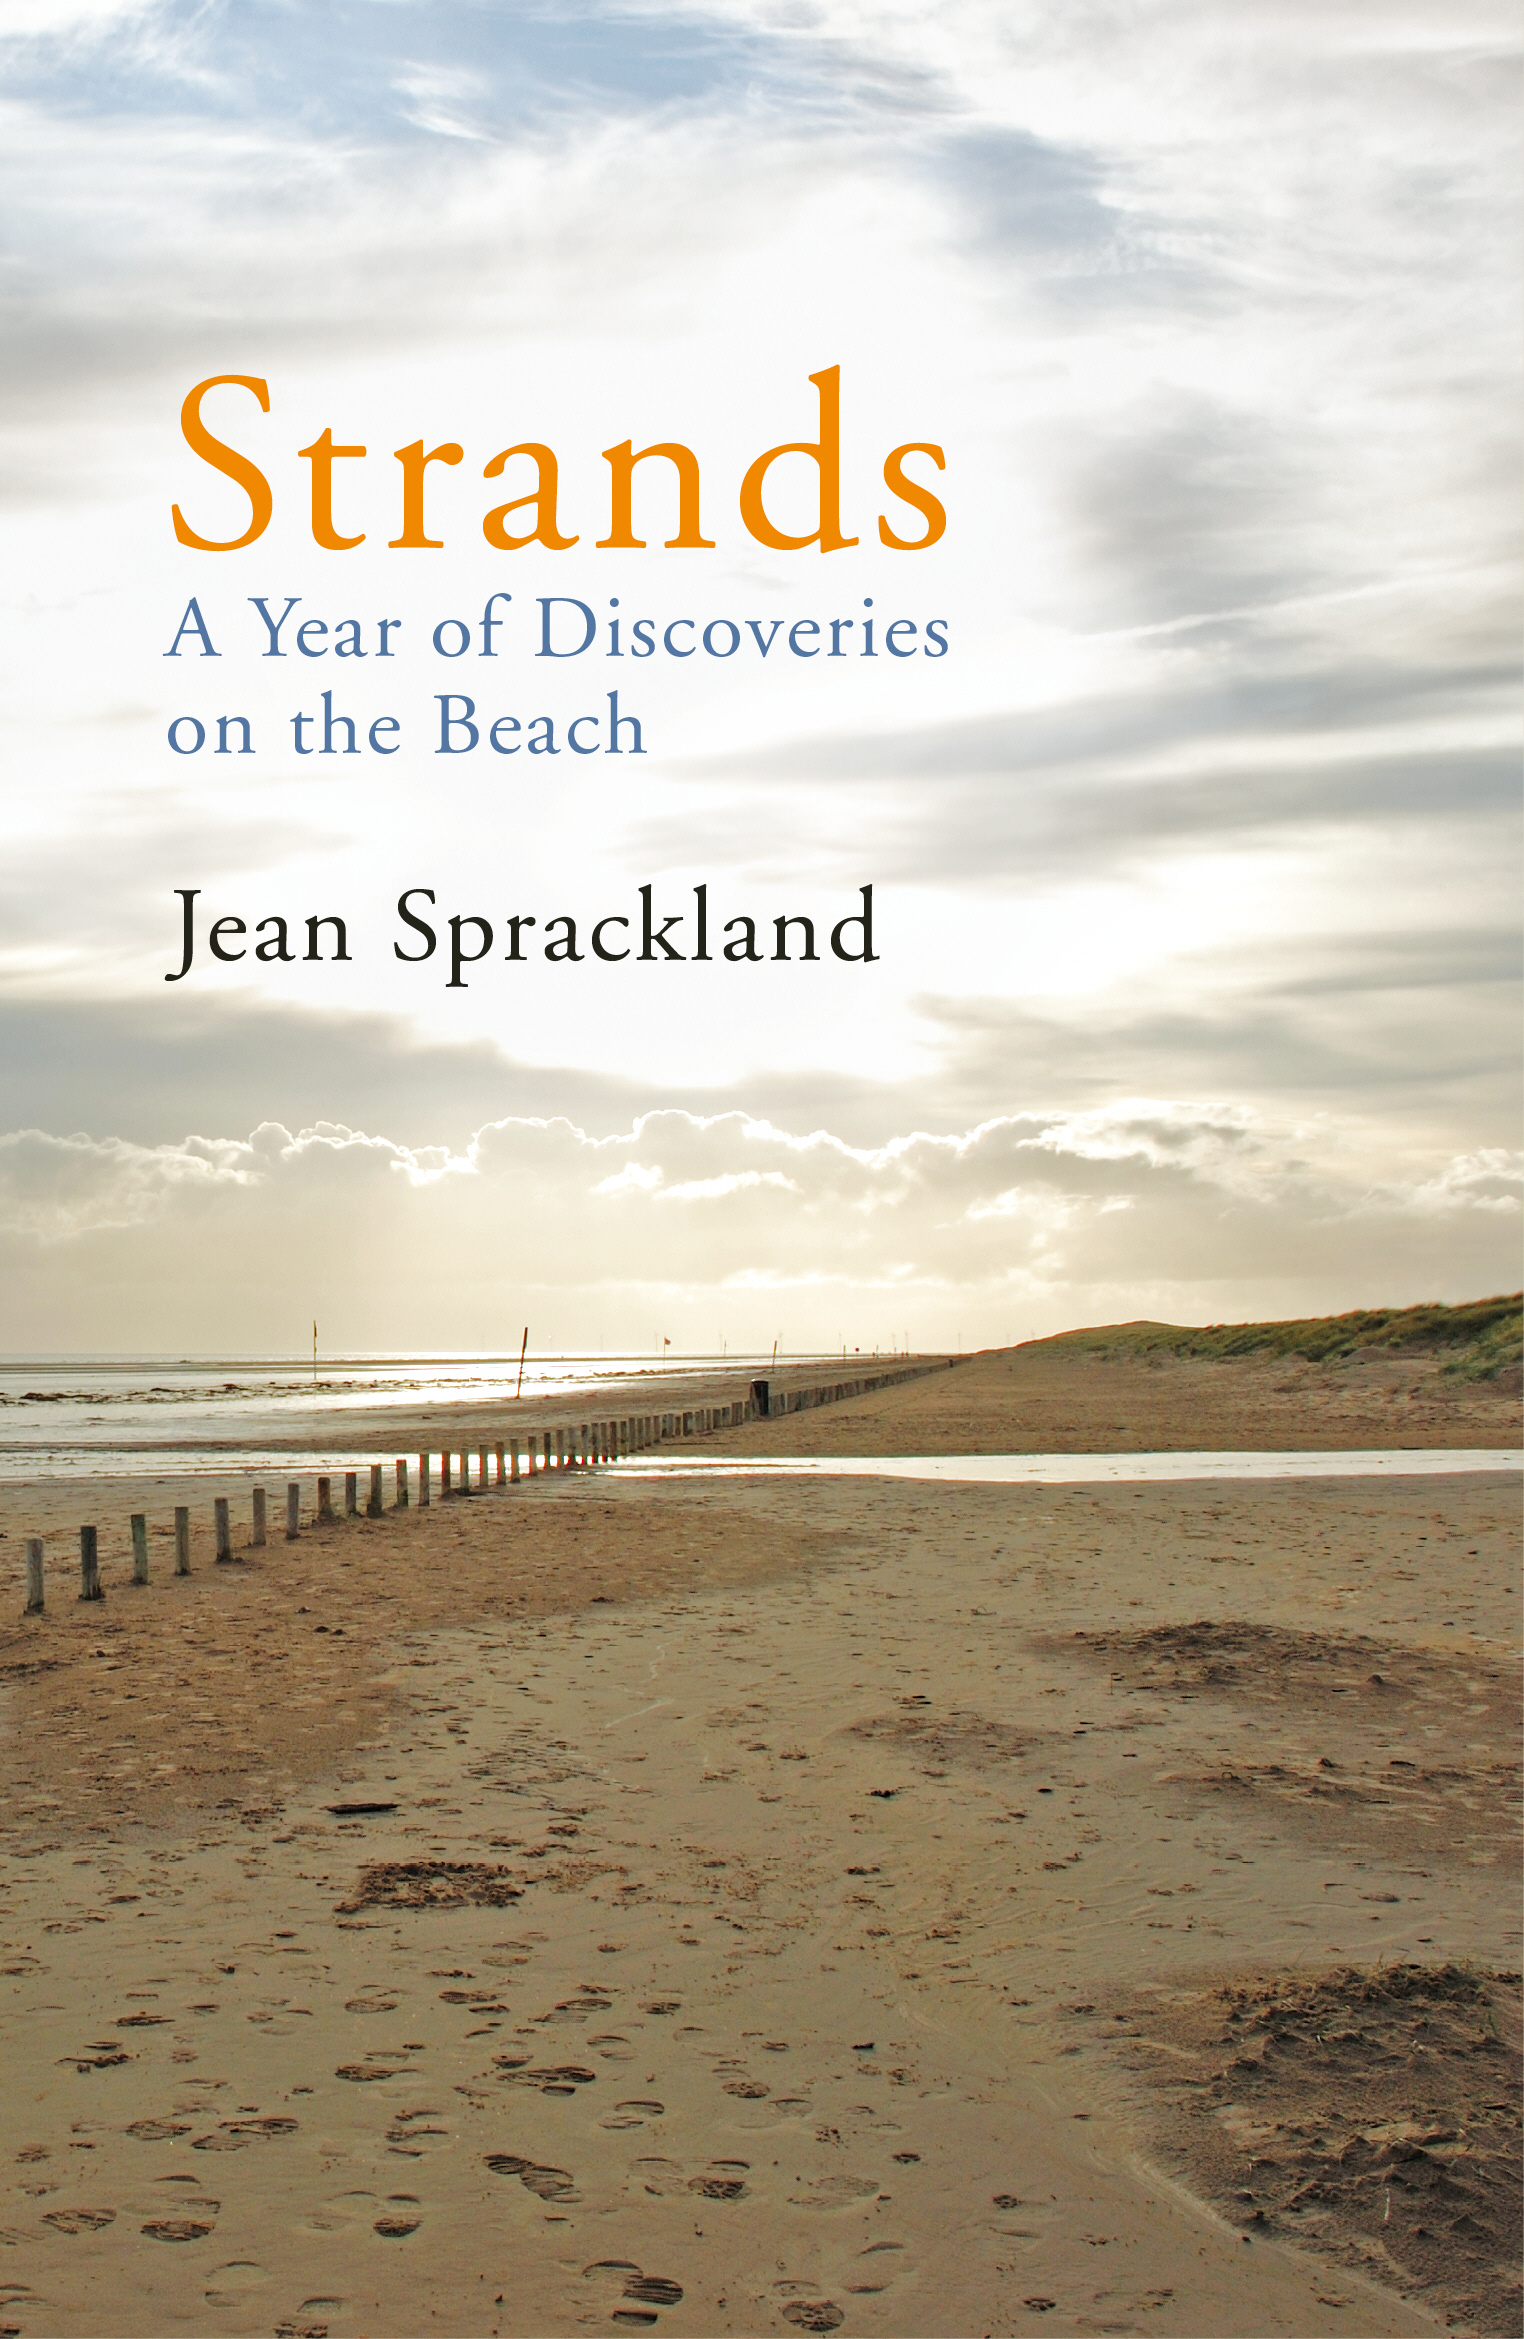 Strands A Year of Discoveries on the Beach